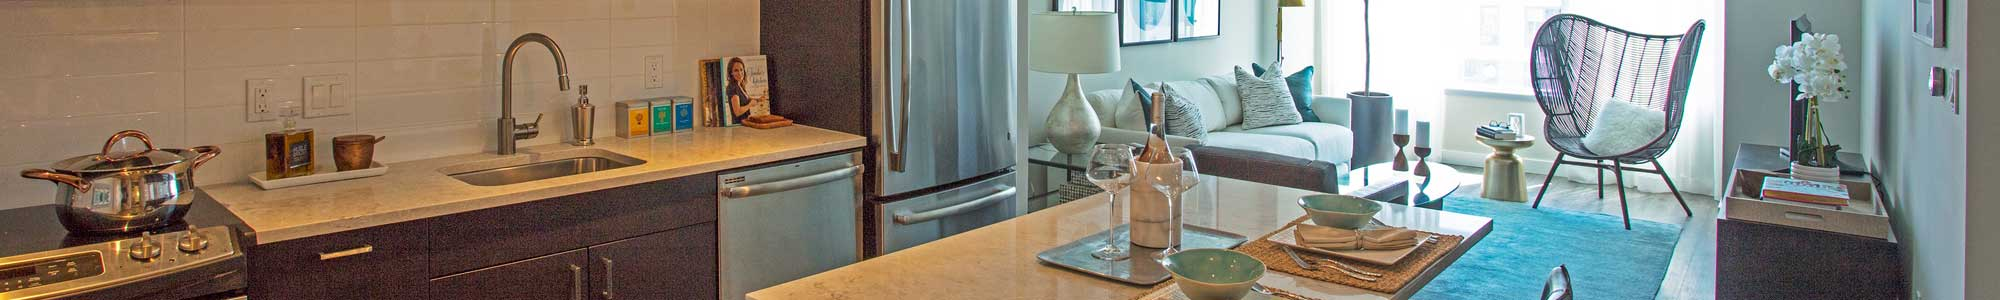 Studio, 1, 2 & 3 bedrooms offered at apartments in Boston